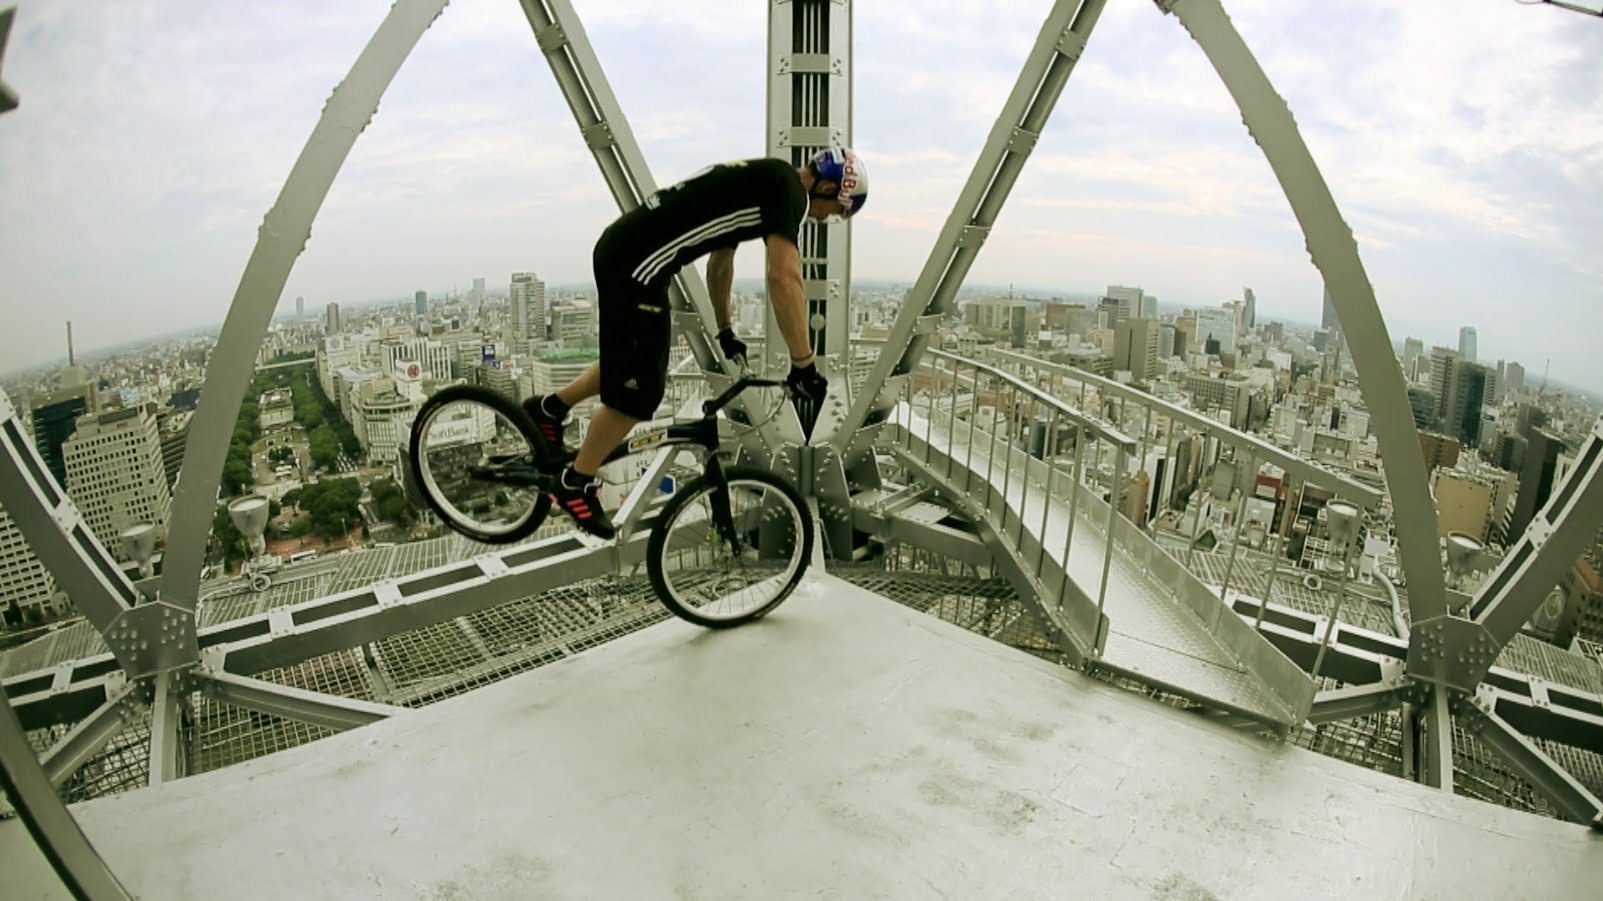 Kenny on top of Nagoya TV tower in Japan at 180m